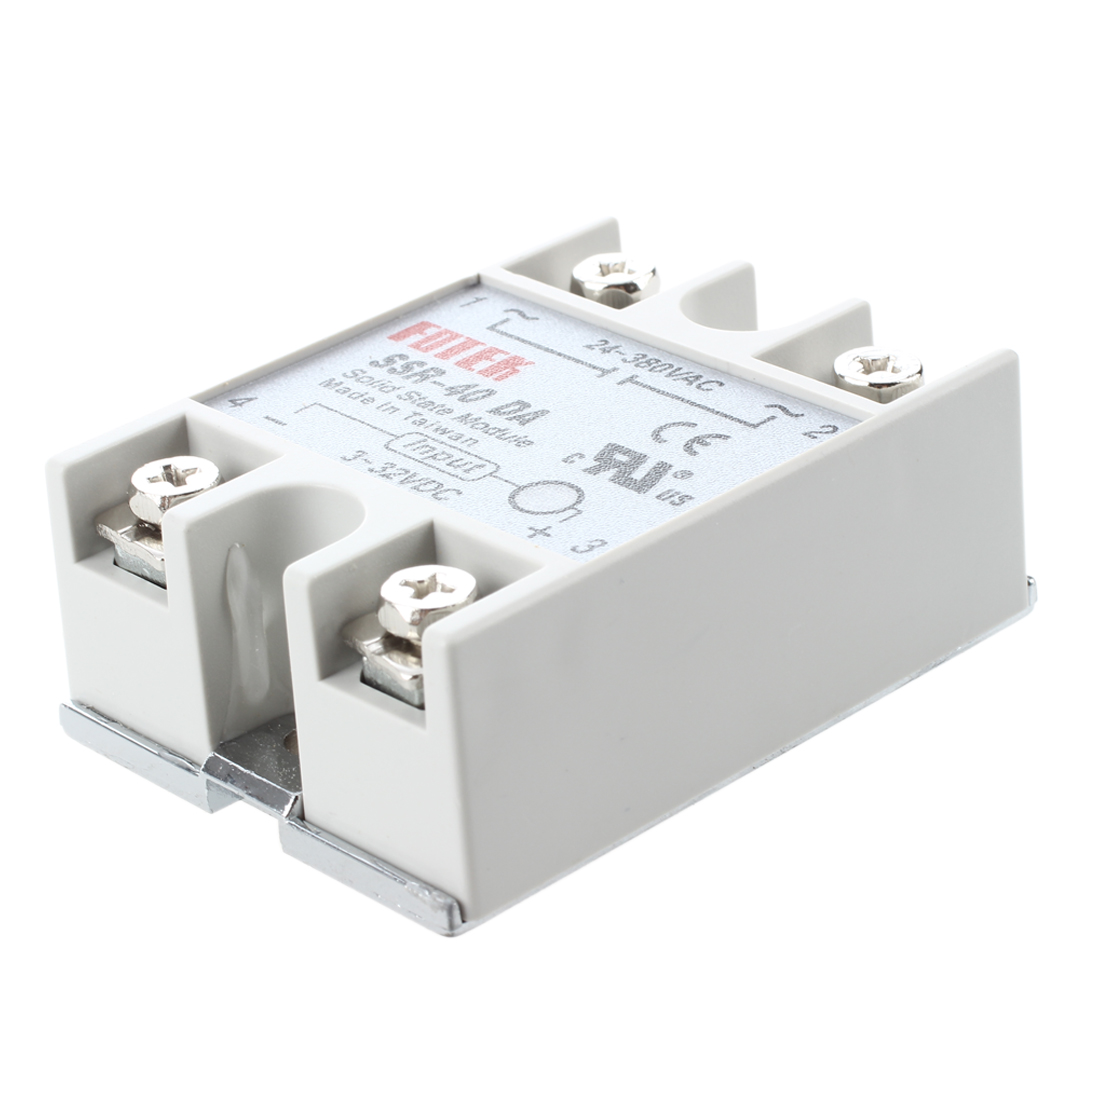 SSR-40DA Solid Relays 3-32V DC / 380V 24-AC / 40A normally open single phase solid state relay ssr mgr 1 d48120 120a control dc ac 24 480v